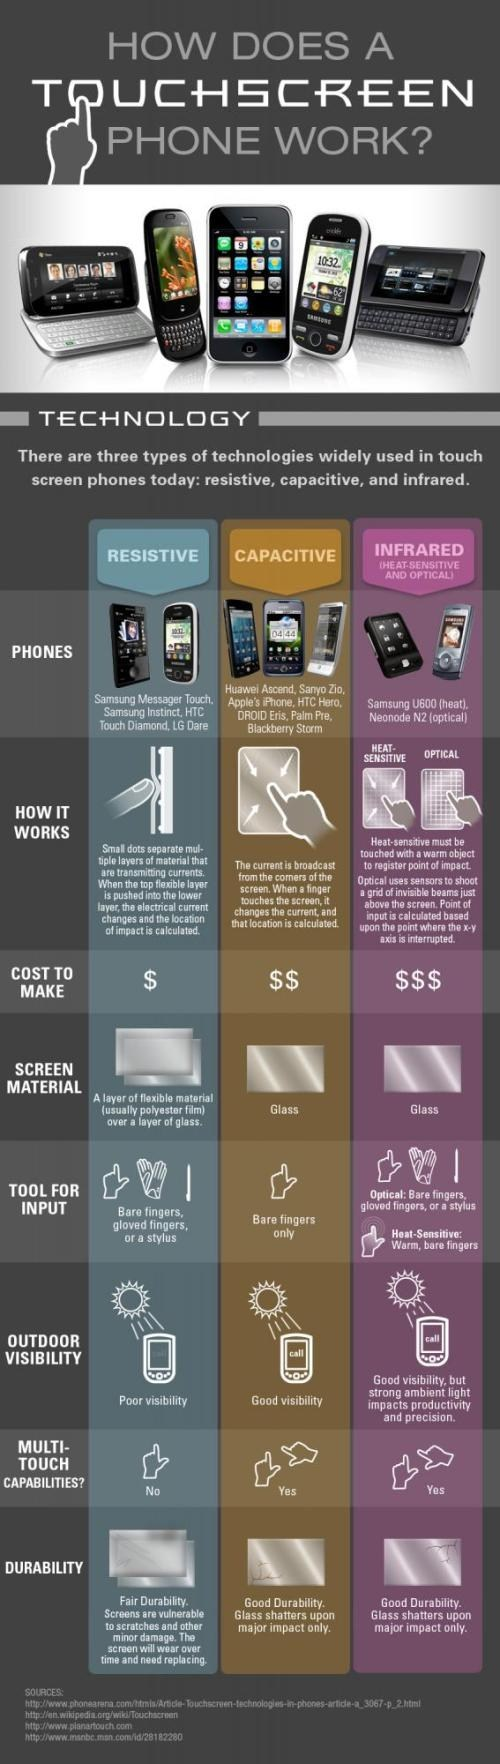 infographic,smart phones,technology,touchscreens